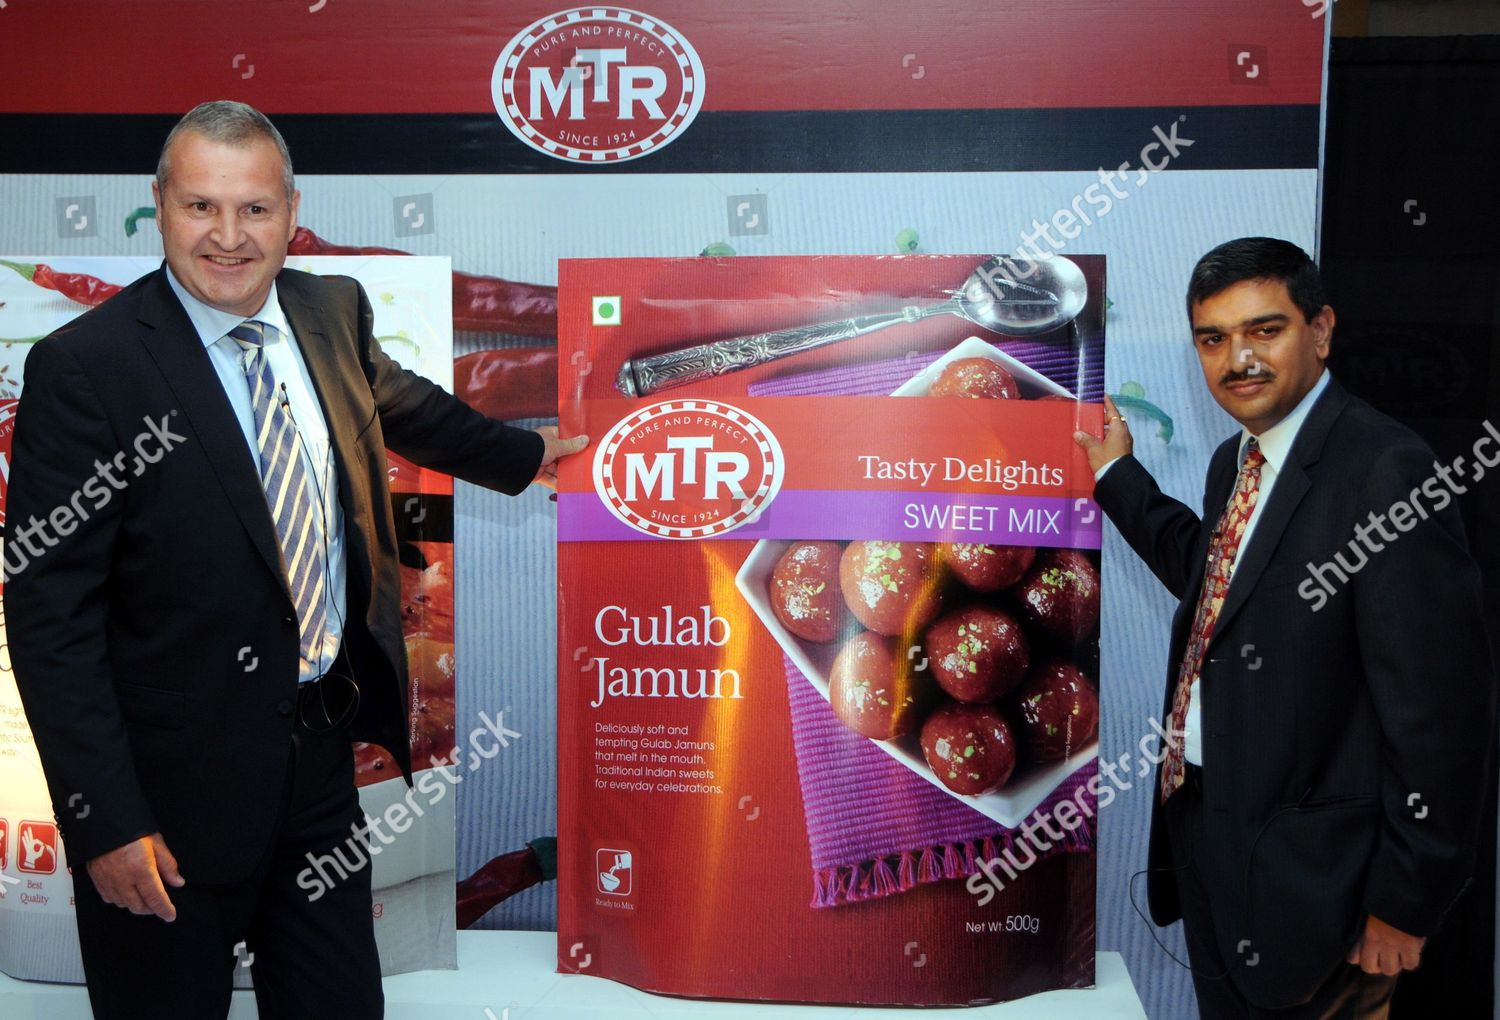 Mtr Foods Corporate Office Contact Number